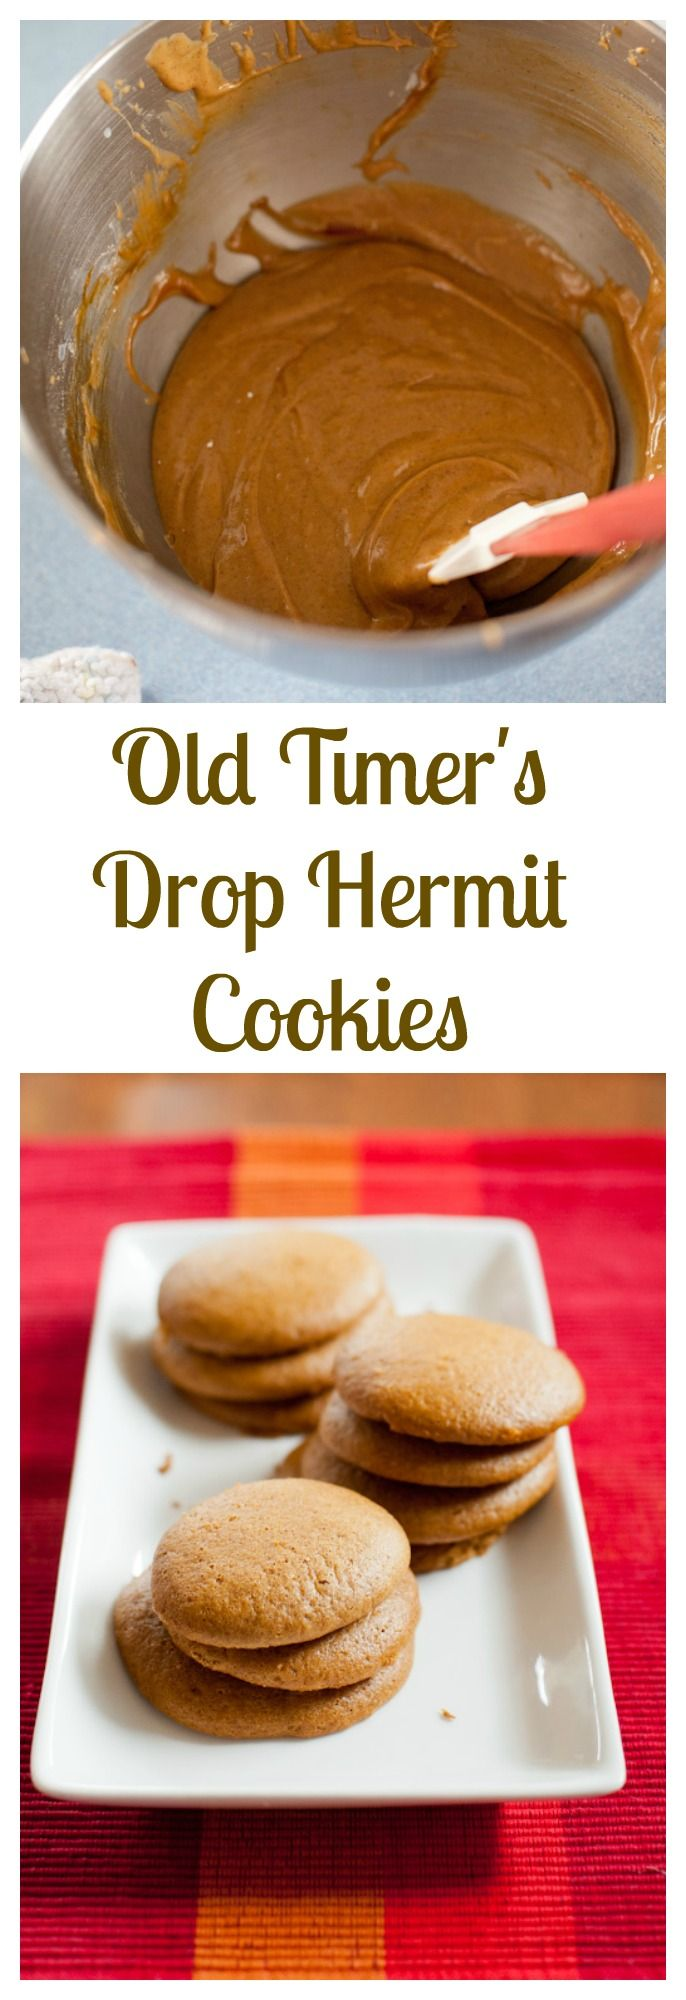 Antique recipe for Drop Hermit cookies - a delicious molasses flavor cookie with the texture of a cupcake top! bloggingwithapples.com